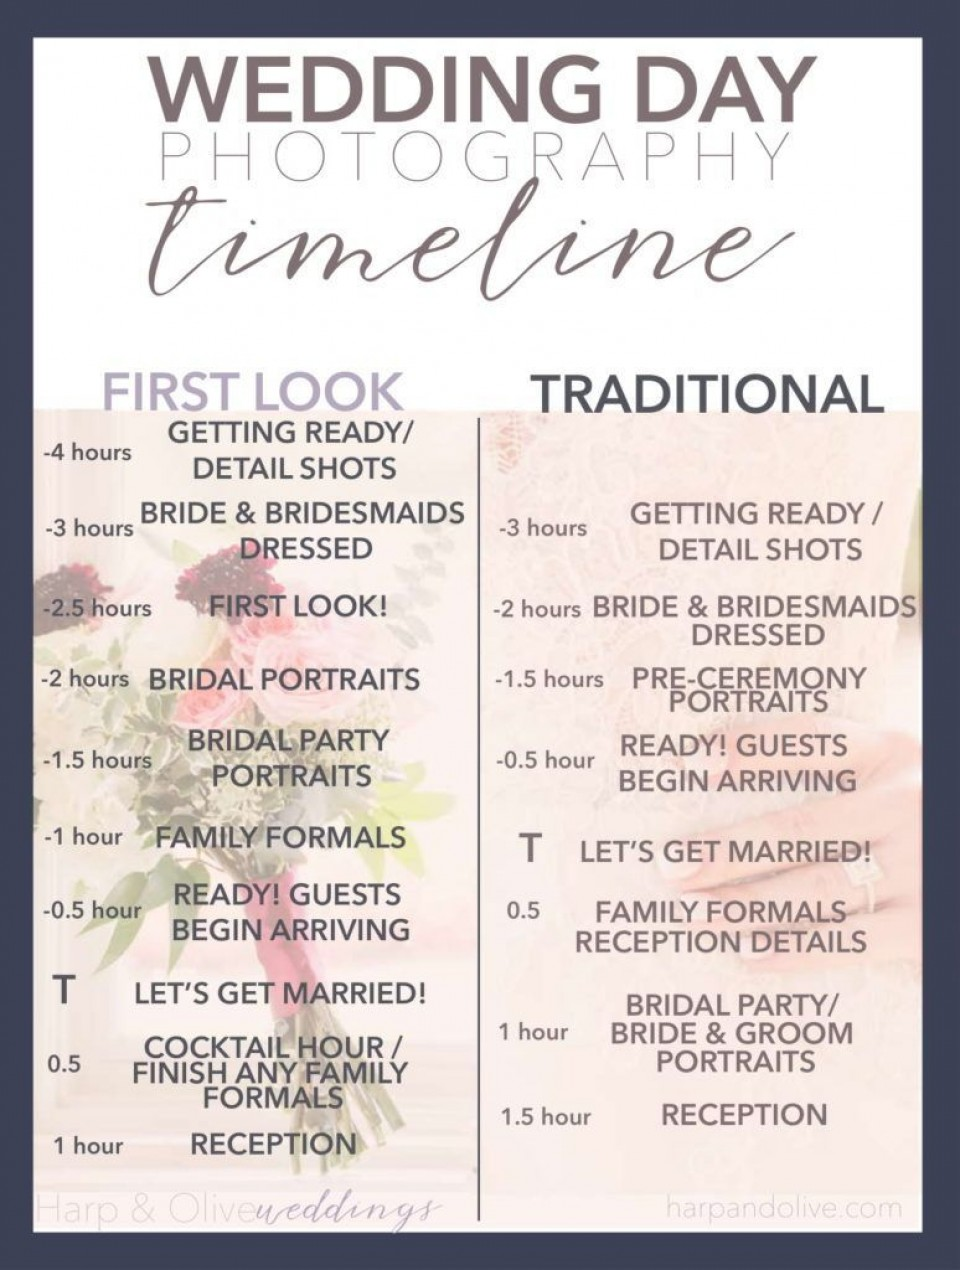 008 Singular Wedding Day Itinerary Template Sample  Reception Dj Indian Timeline For Bridal Party960